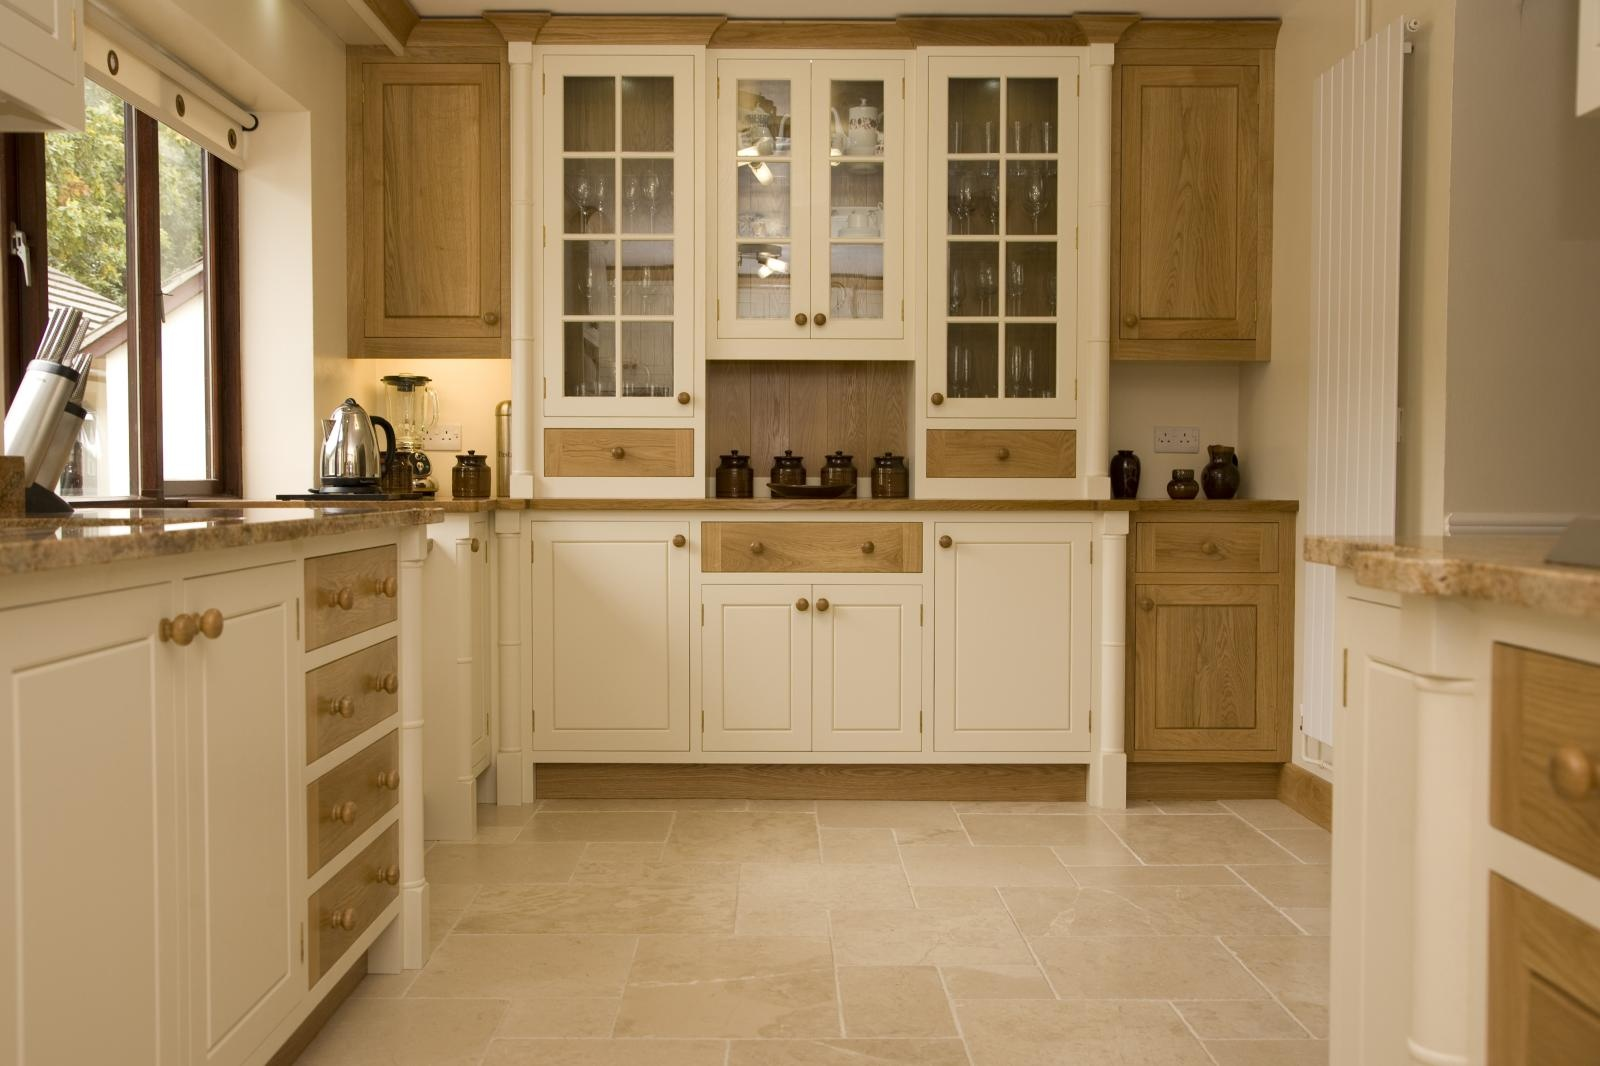 Painted Oak Kitchen Llanrhystud